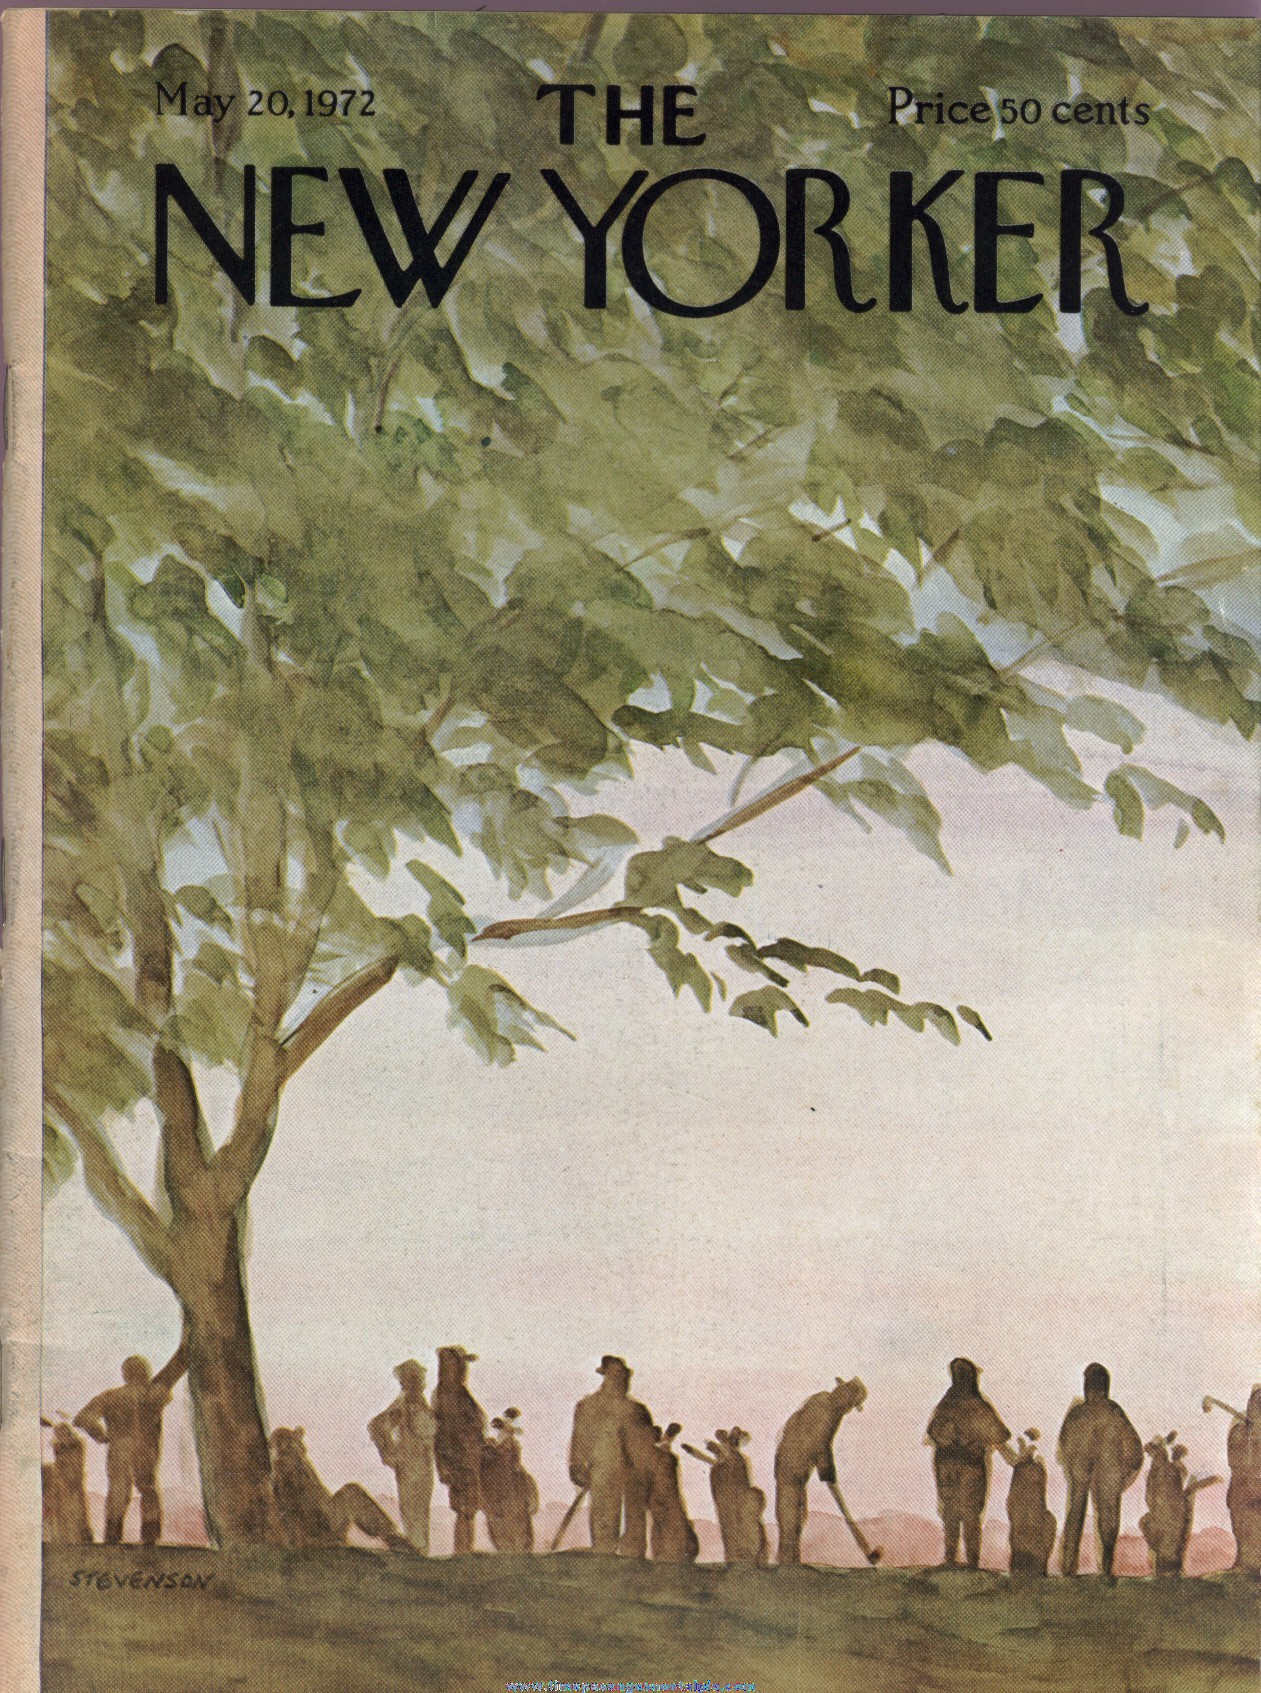 New Yorker Magazine - May 20, 1972 - Cover by James Stevenson